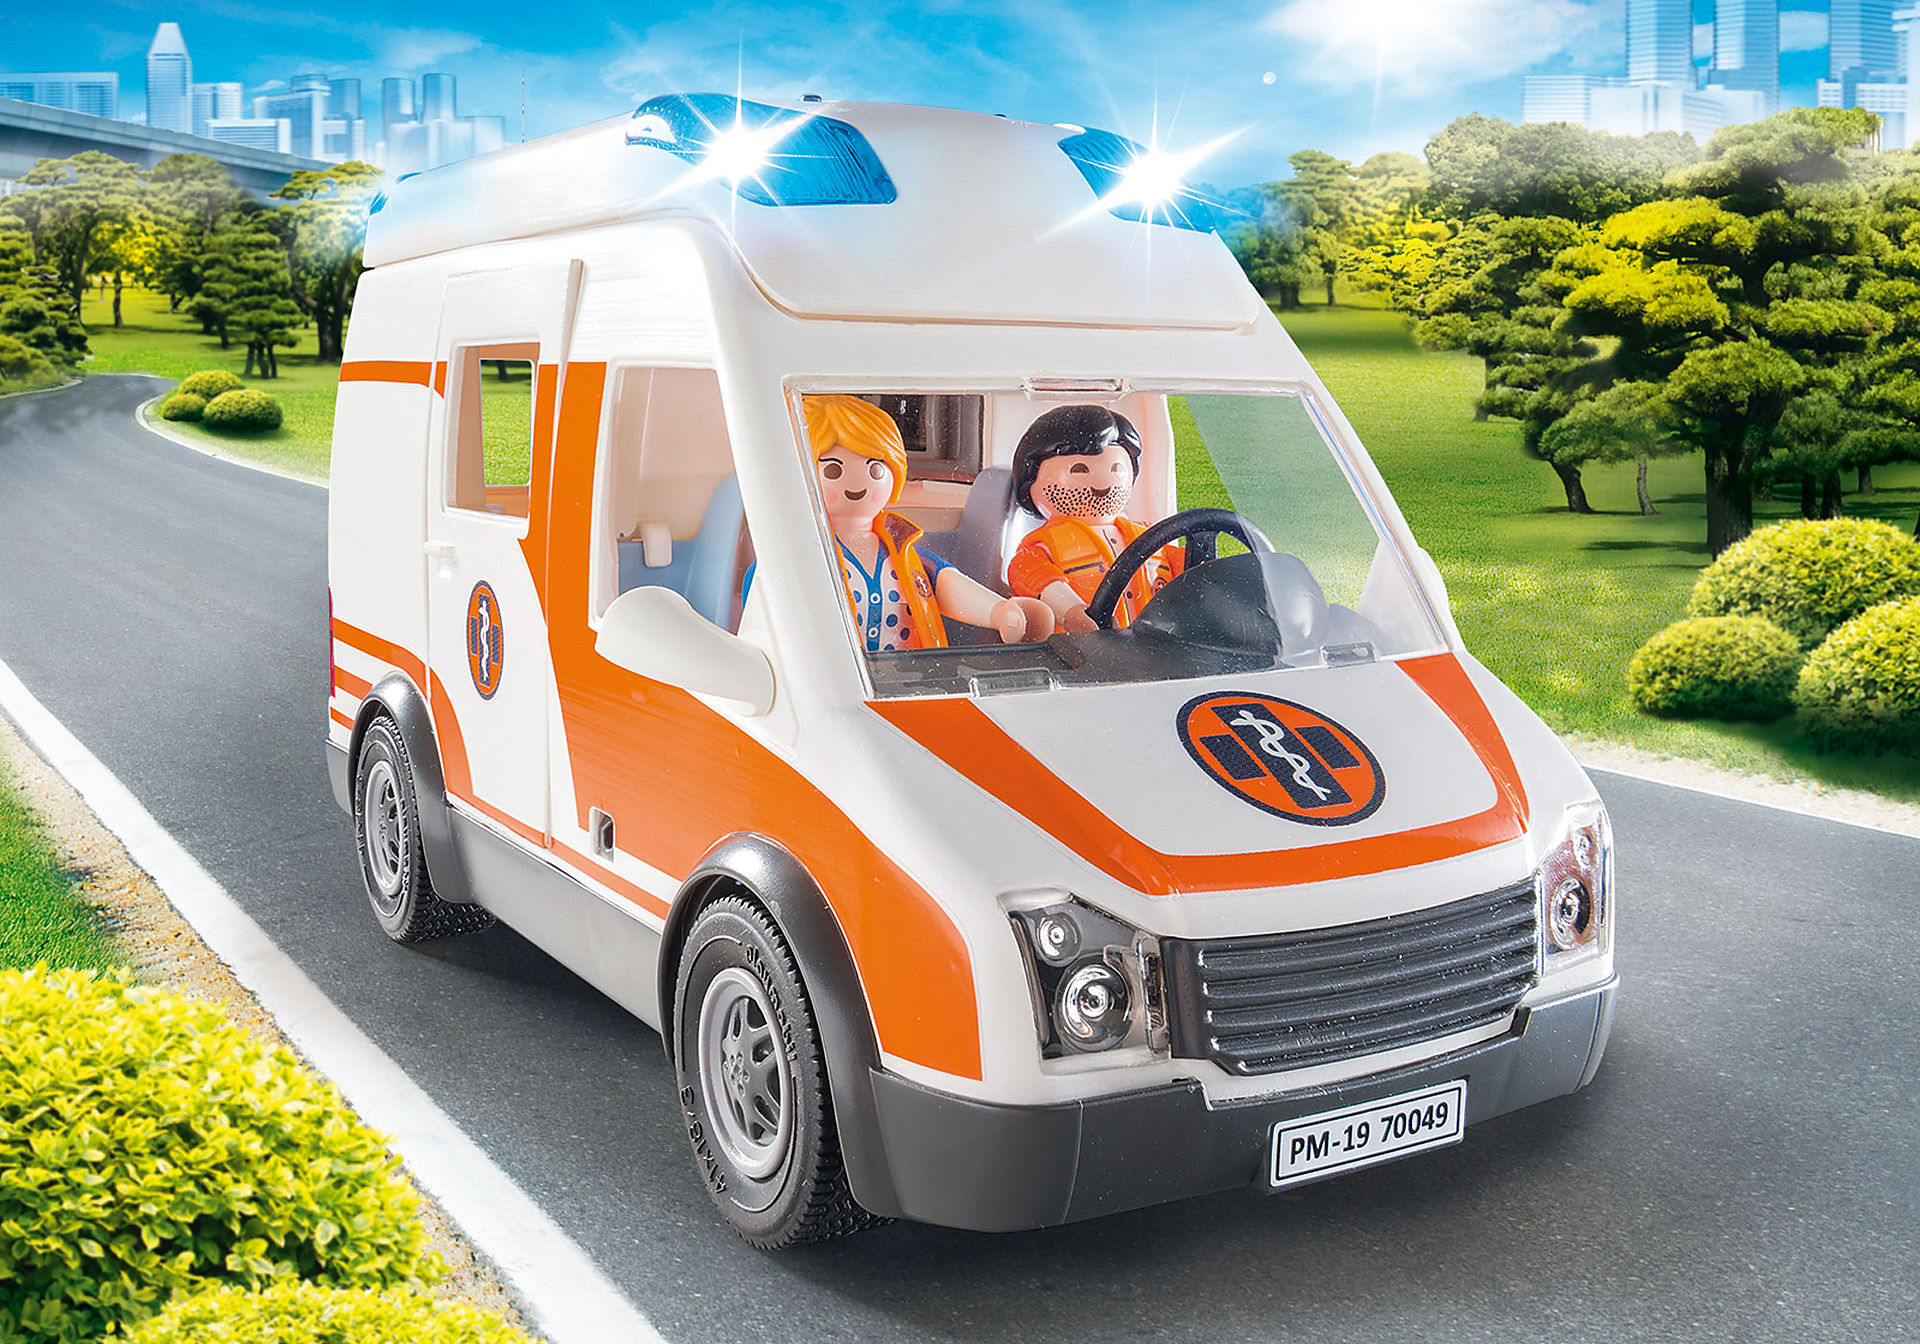 http://media.playmobil.com/i/playmobil/70049_product_extra1/Ambulanza con luci lampeggianti